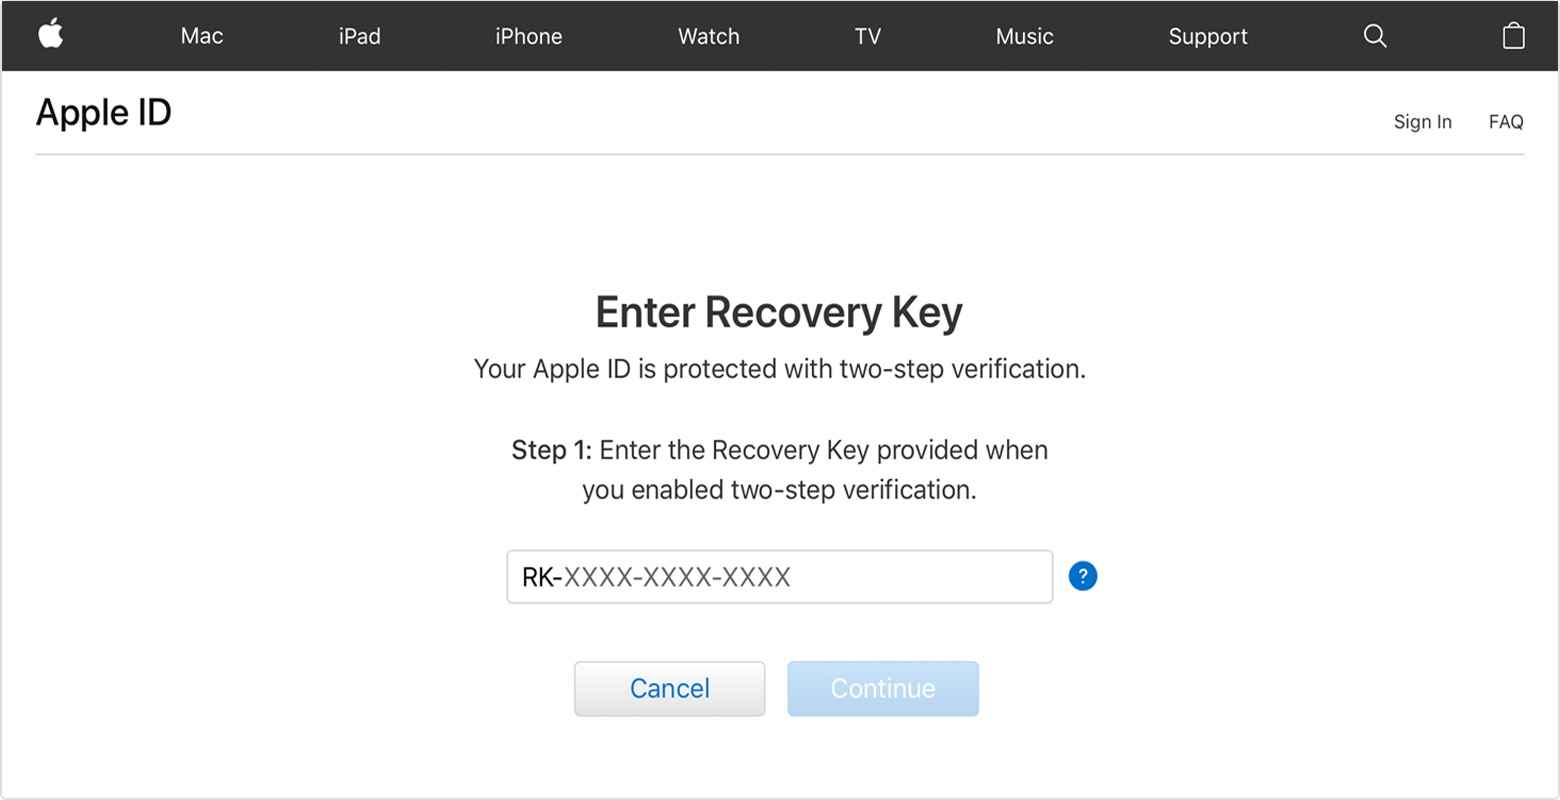 Apple ID screen showing Enter Recovery Key